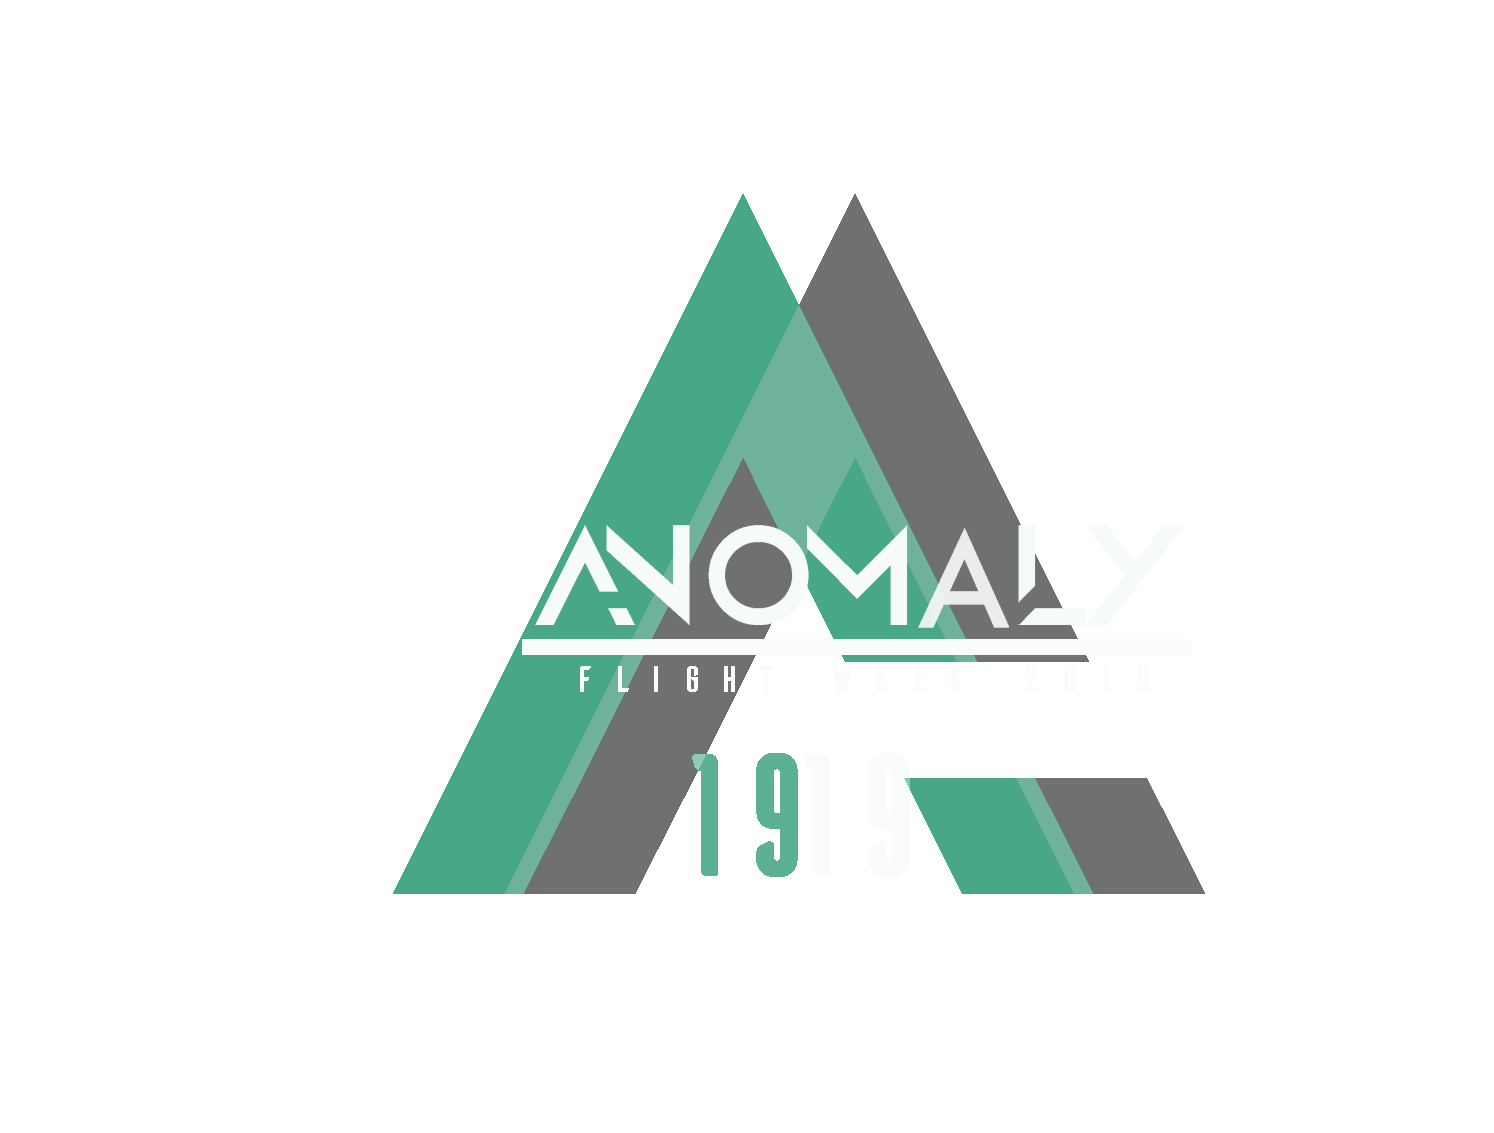 ASSORTED ANOMALY LOGO .PNG